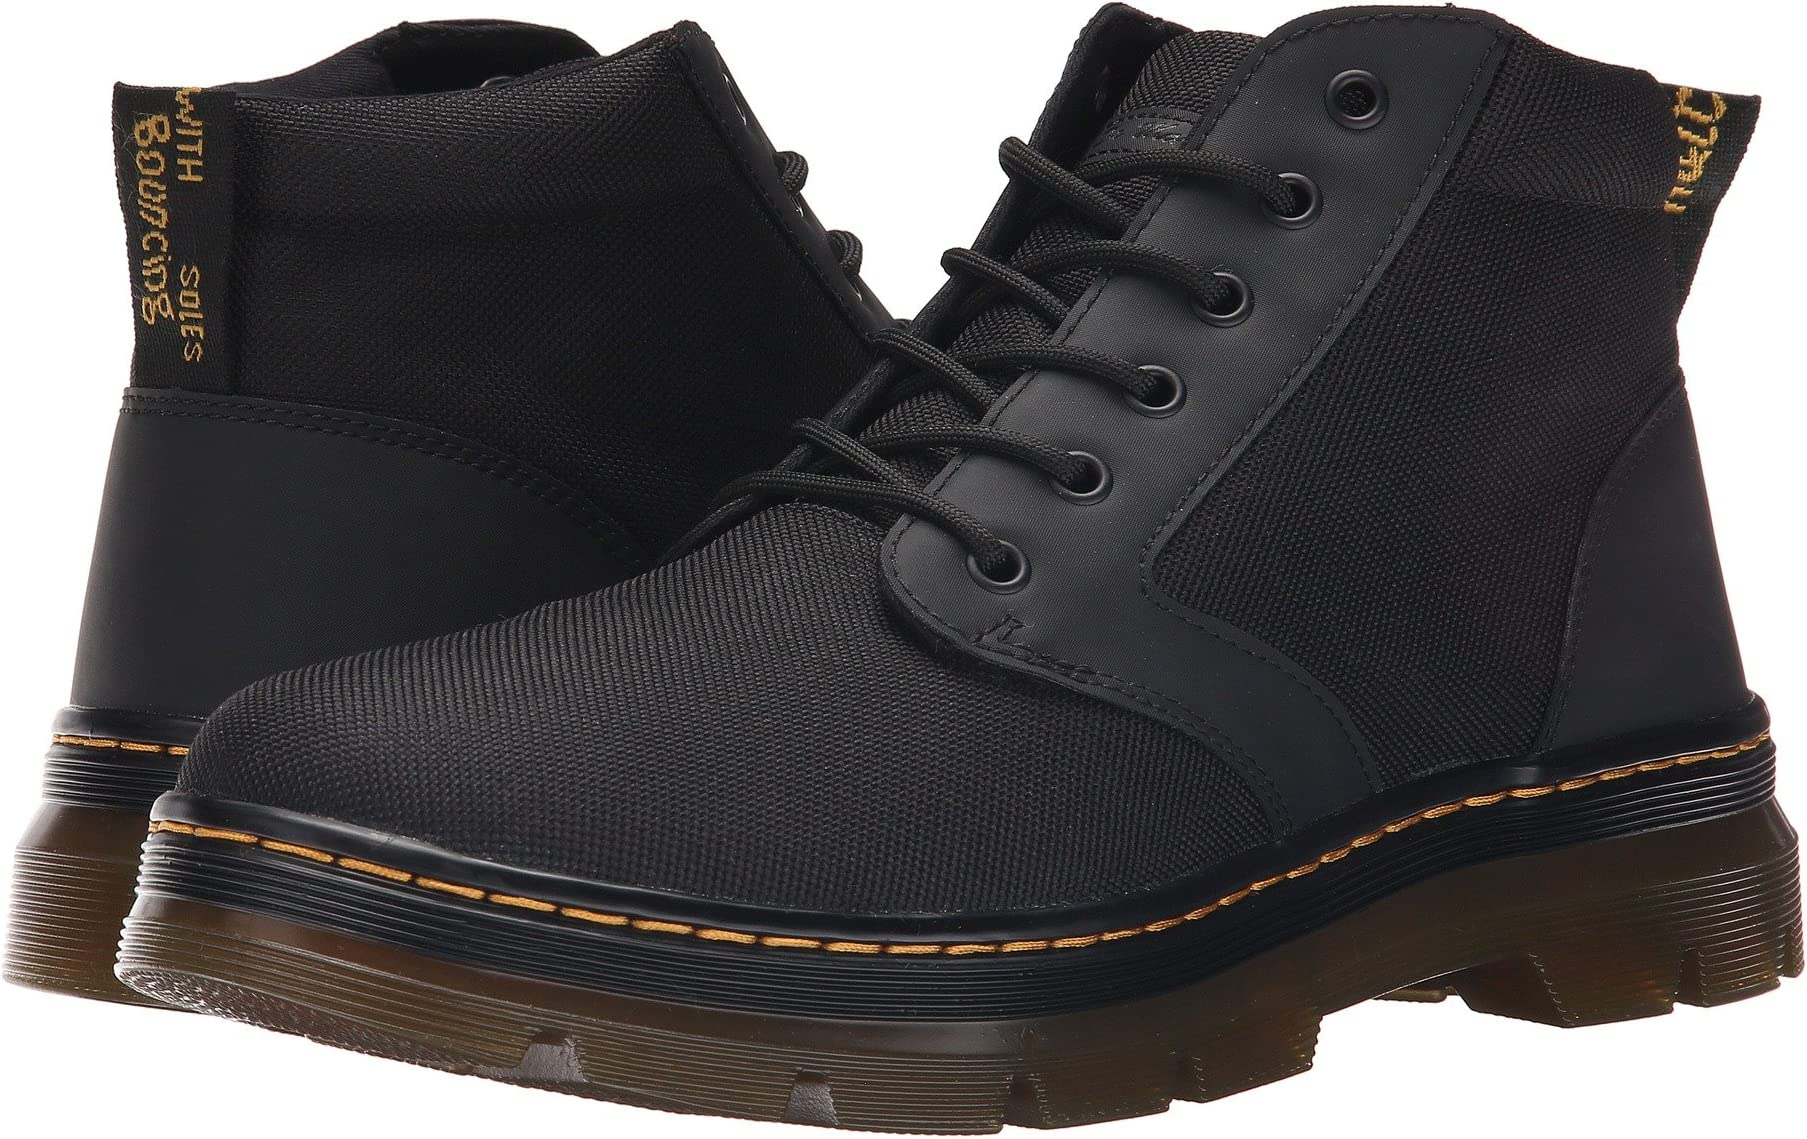 Dr. Martens Boots, Shoes, and More |